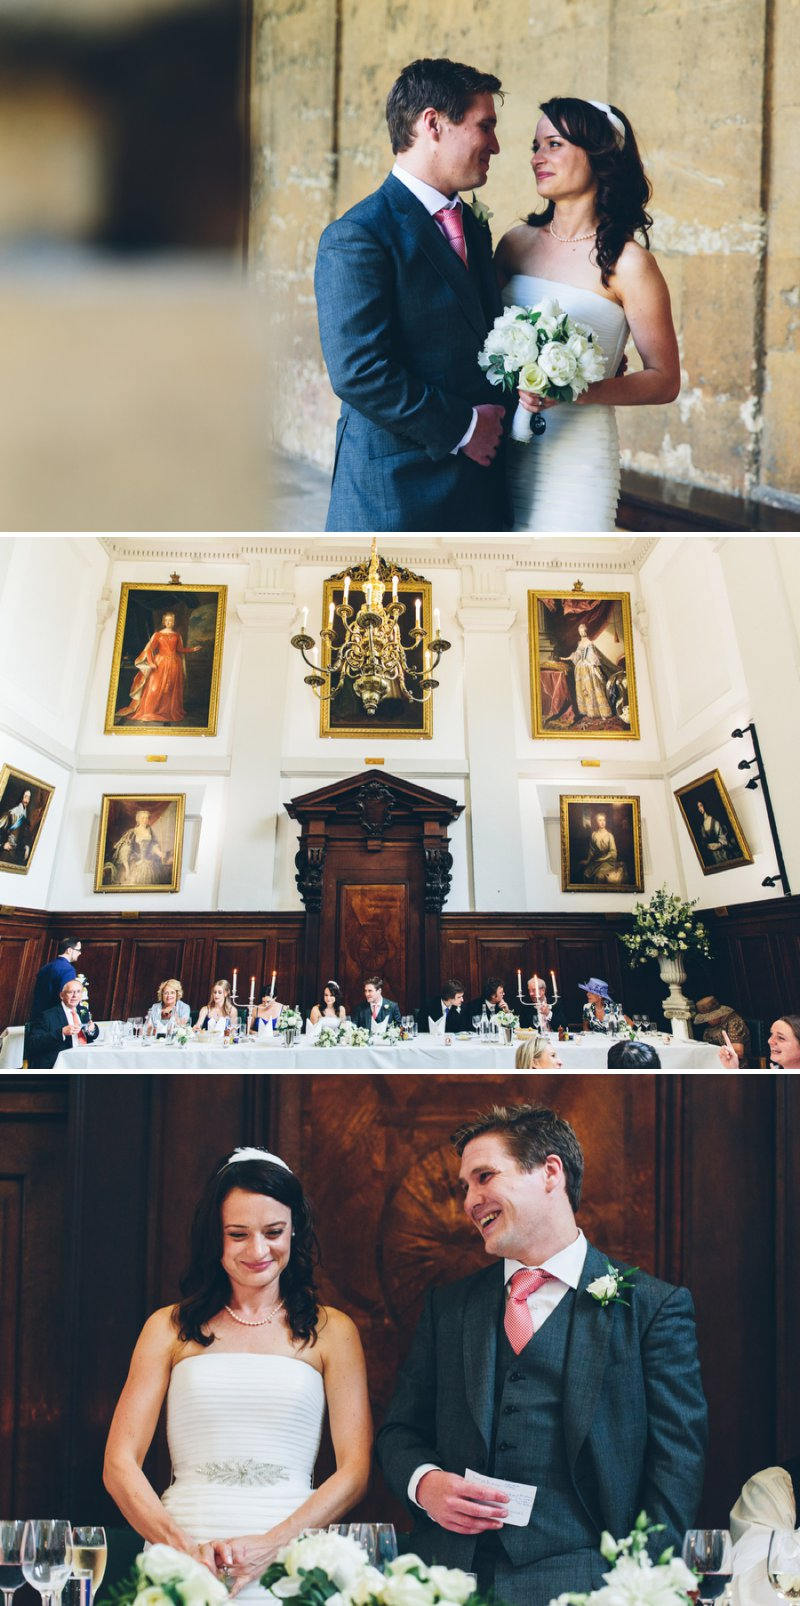 Elegant Contemporary Wedding At The Bodleian Library Queens College Oxford With Bride In Ulanova By Pronovias And Jimmy Choo Heels With Groom In Suit By Cad And The Dandy And Bridesmaids In Royal Blue Images By Mister Phill 8